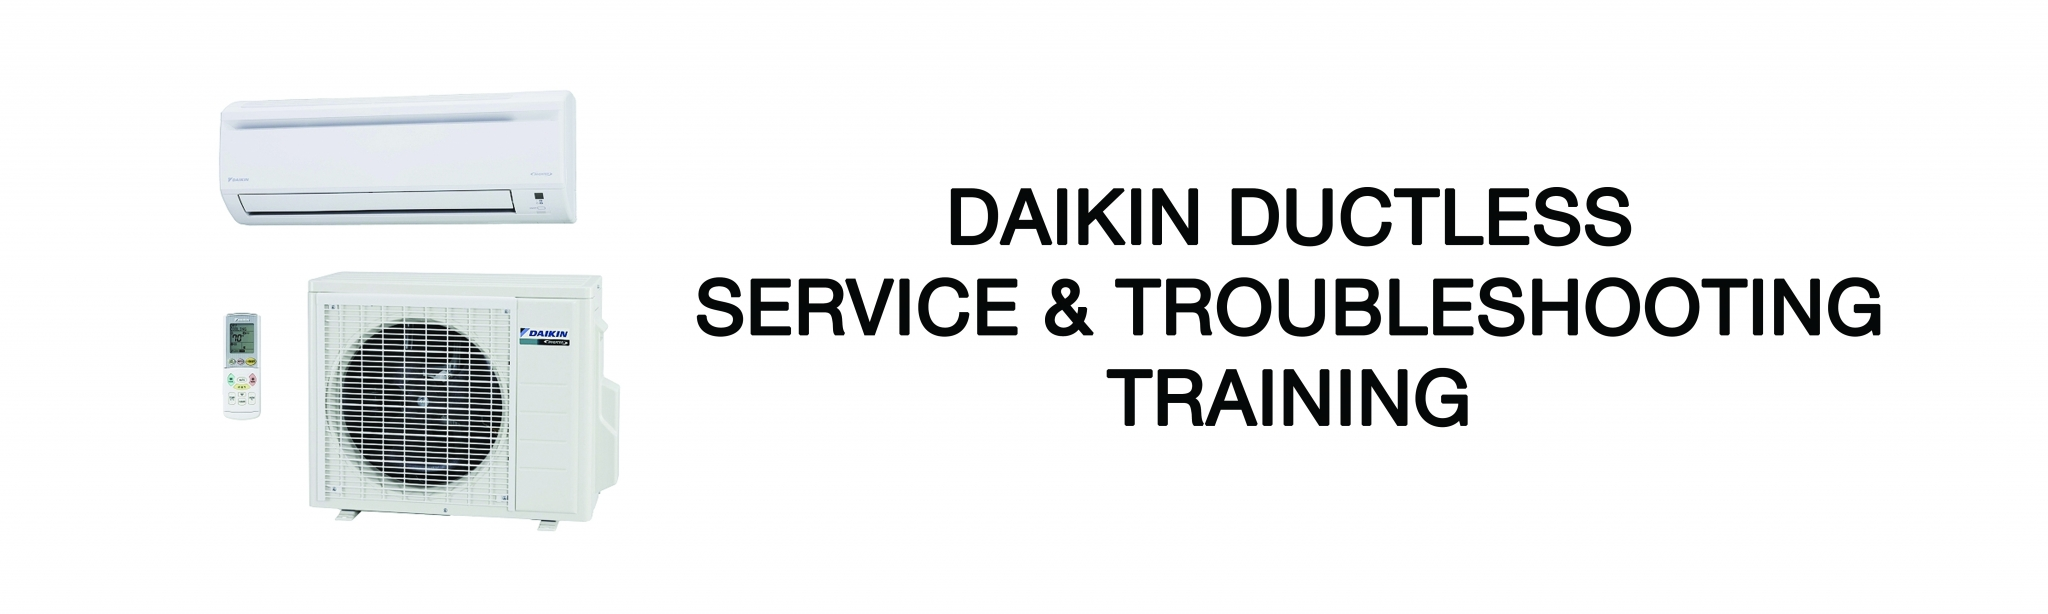 Daikin Ductless Service & Troubleshooting Training - Kansas City